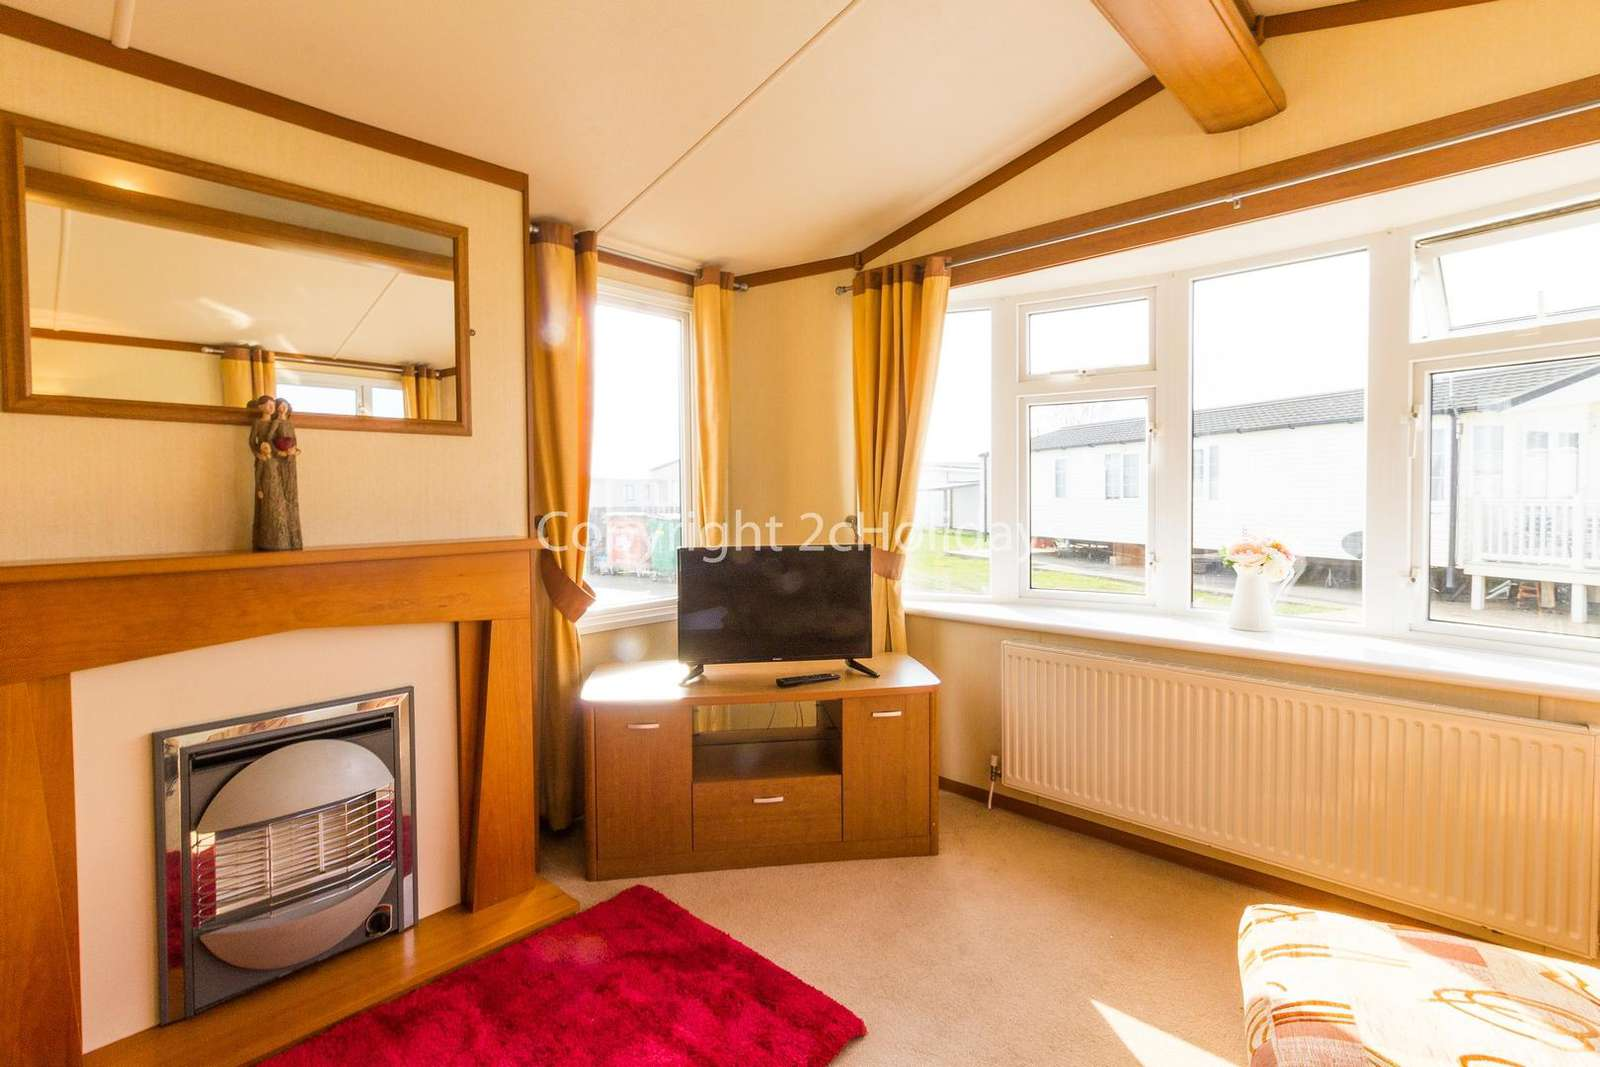 Relax in the living area with a TV and electric fire